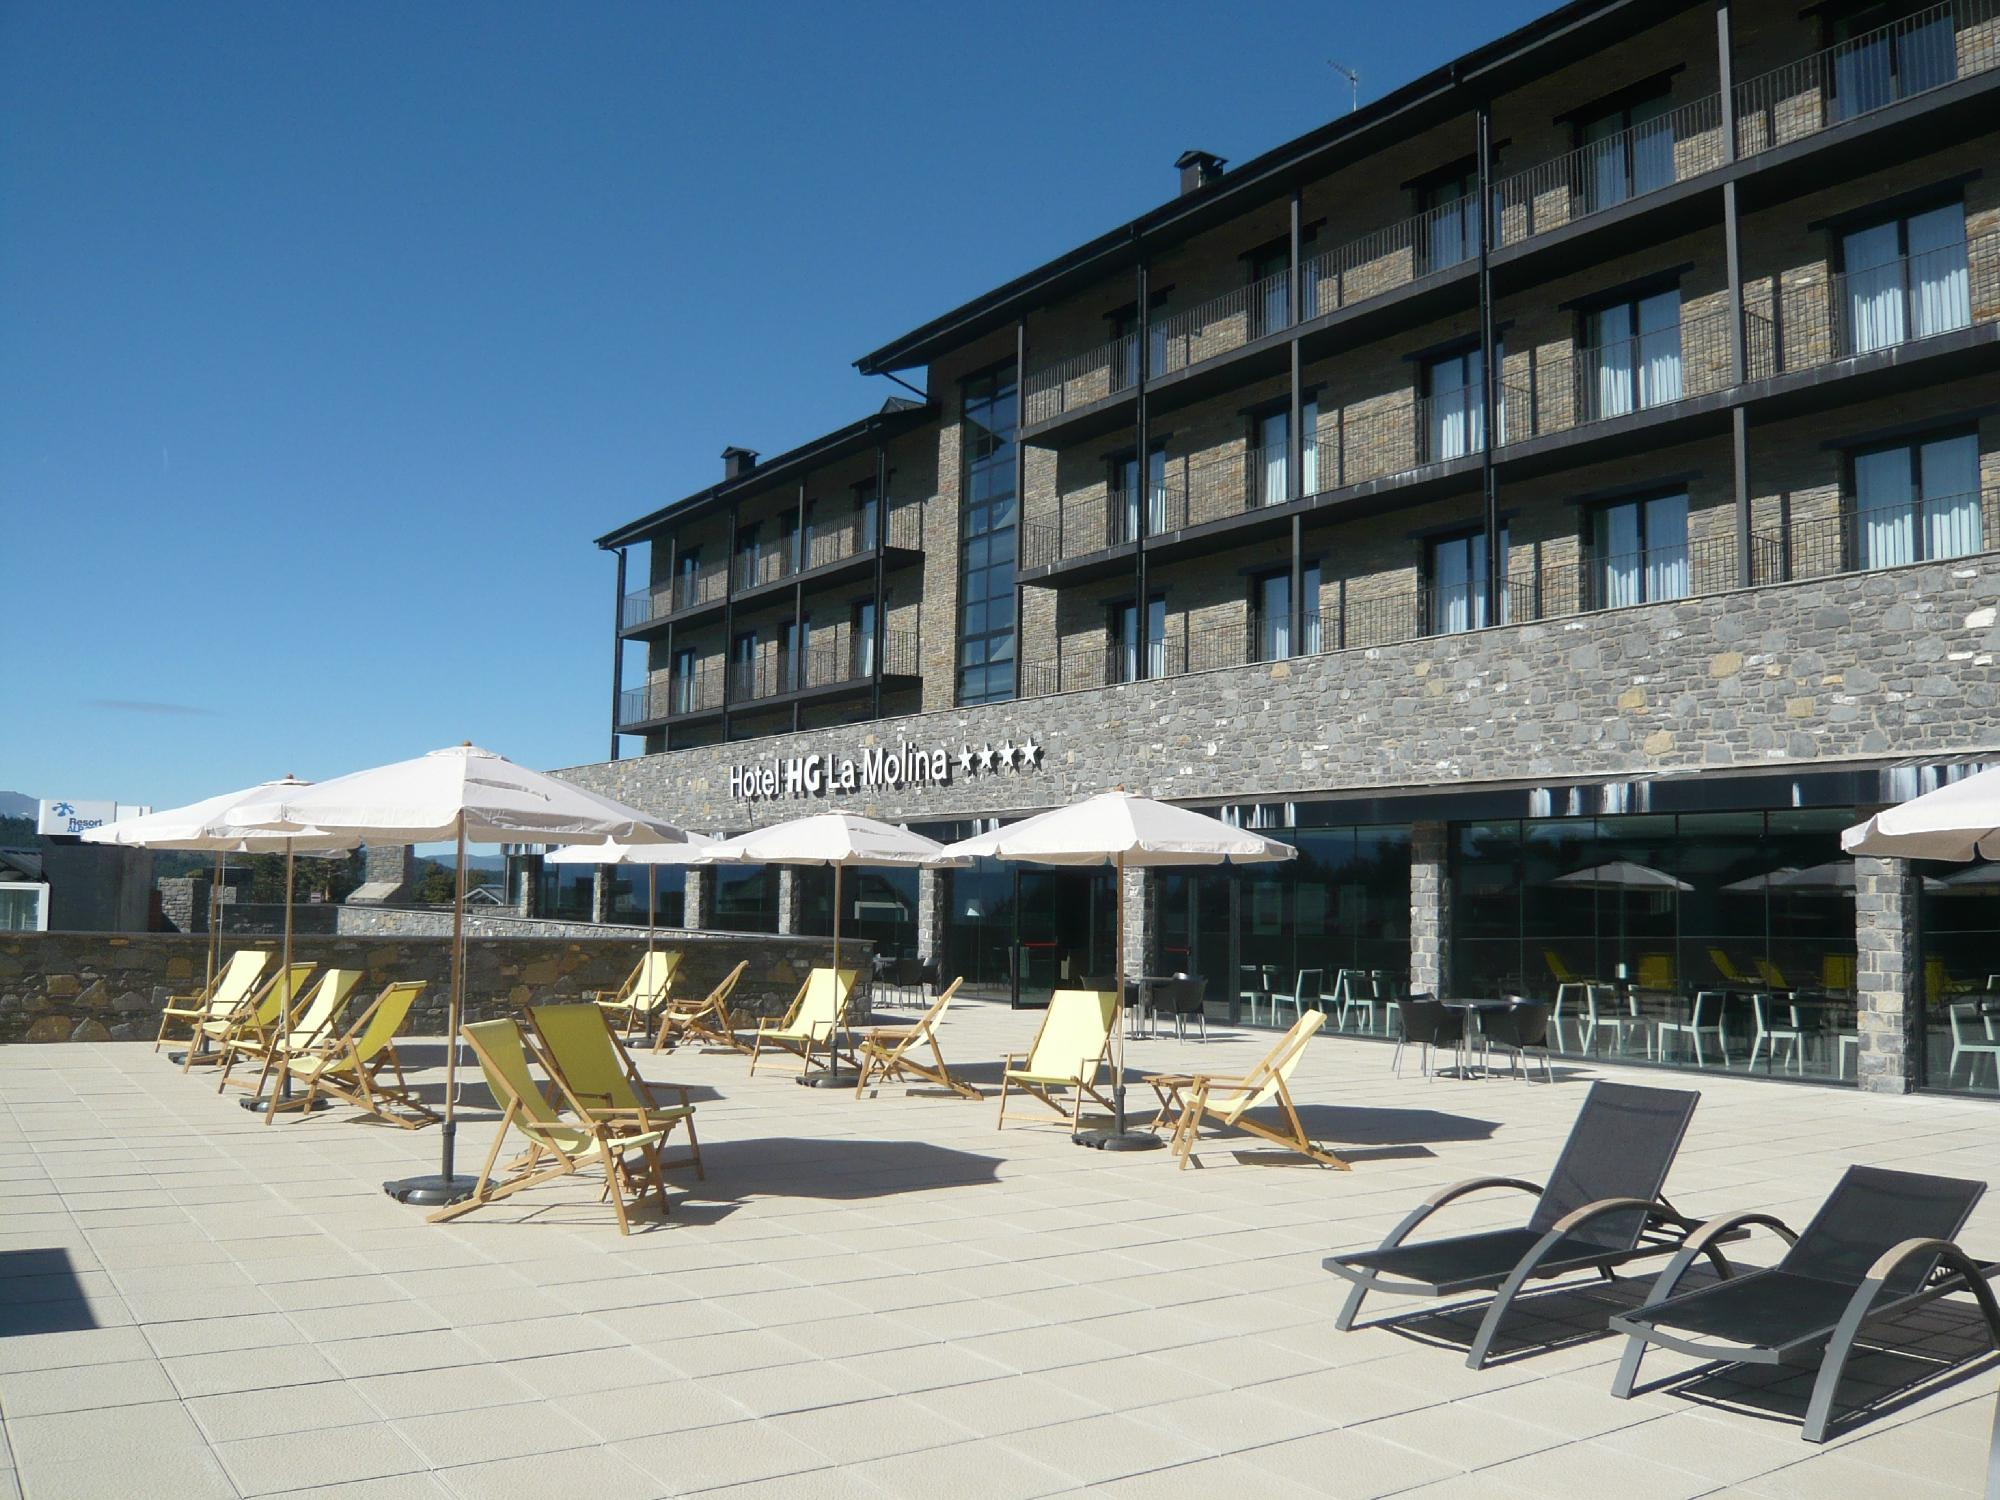 La Molina-Alp Spain  city images : llarga s n 17537 la molina alp spain hotel amenities